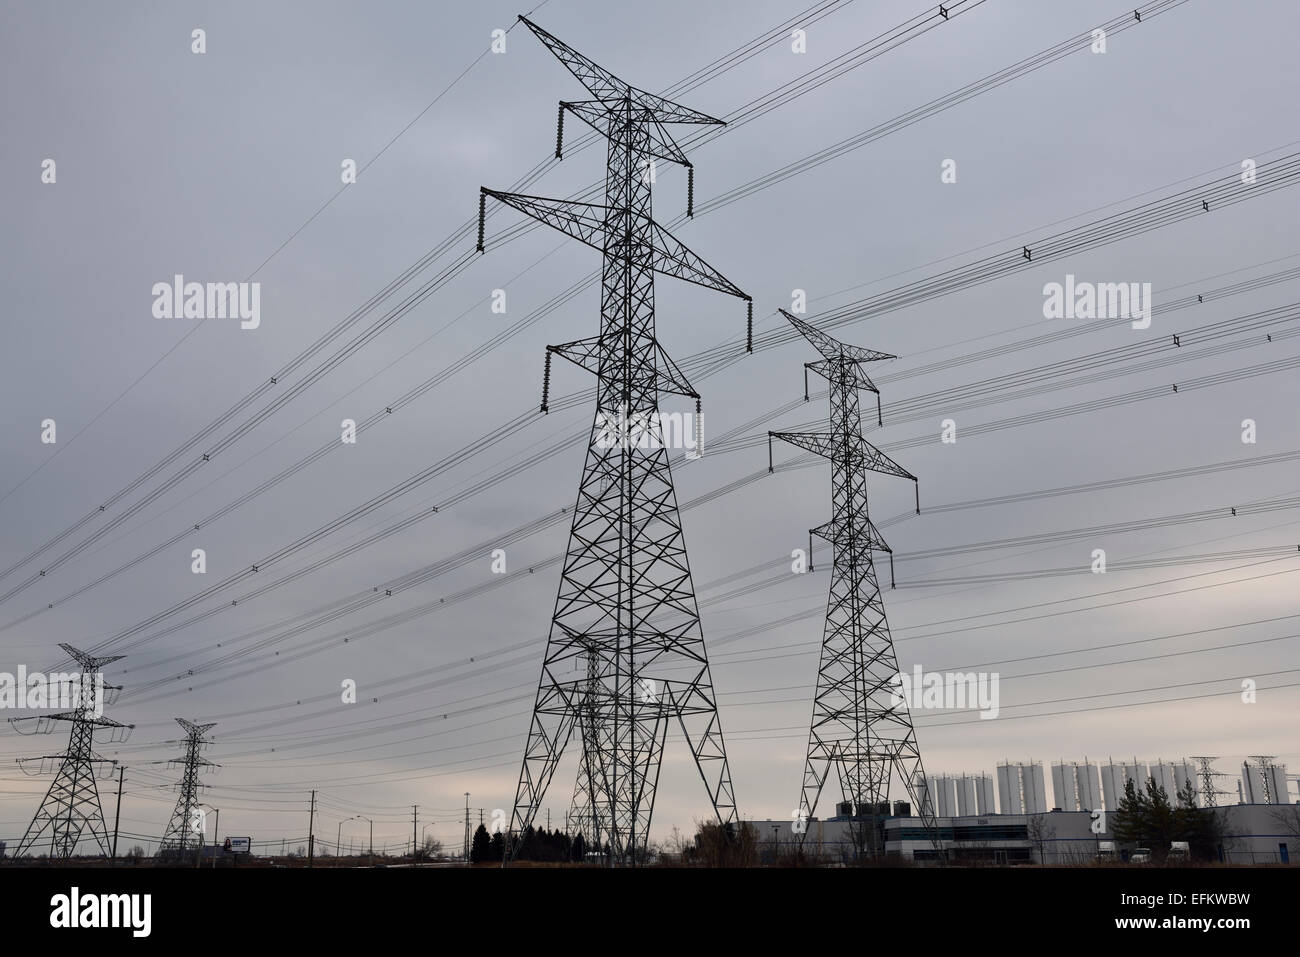 Hydro towers and high tension electricity power lines in an industrial park with cloudy sky Vaughan Canada - Stock Image